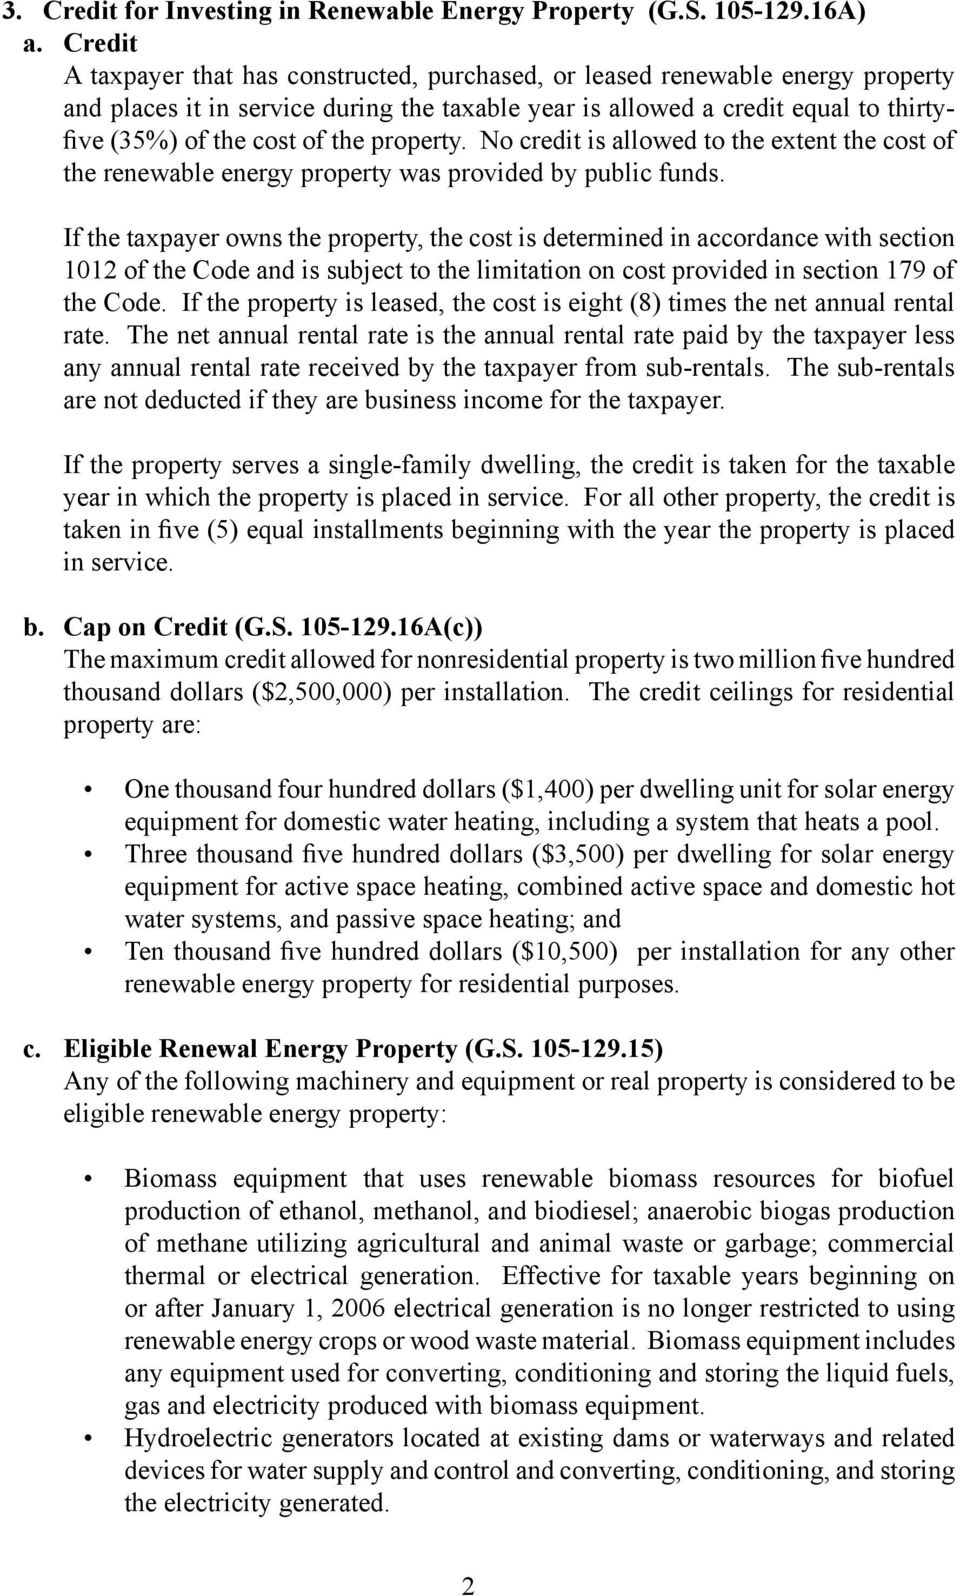 the property. No credit is allowed to the extent the cost of the renewable energy property was provided by public funds.